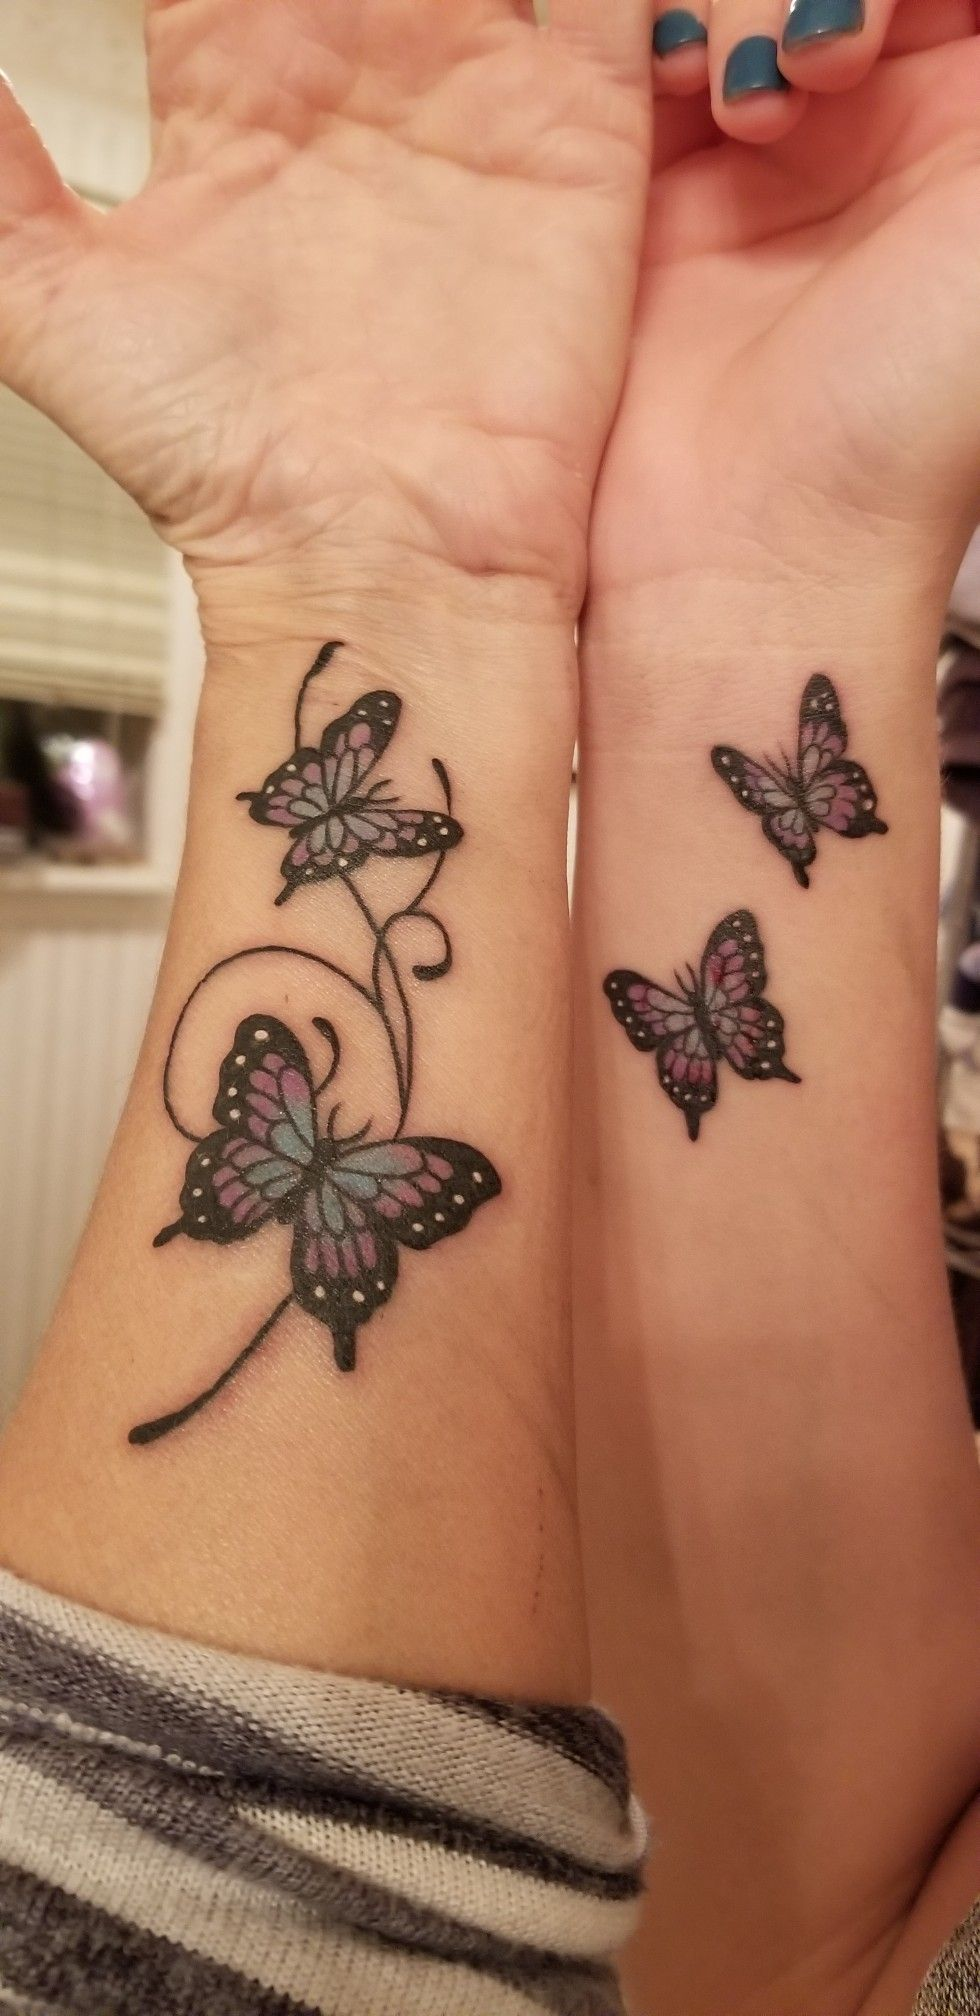 Mother Daughter Butterfly Tattoo : mother, daughter, butterfly, tattoo, Mother, Daughter, Butterfly, Tattoos, Daughters,, Matching, Friend, Tattoos,, Purple